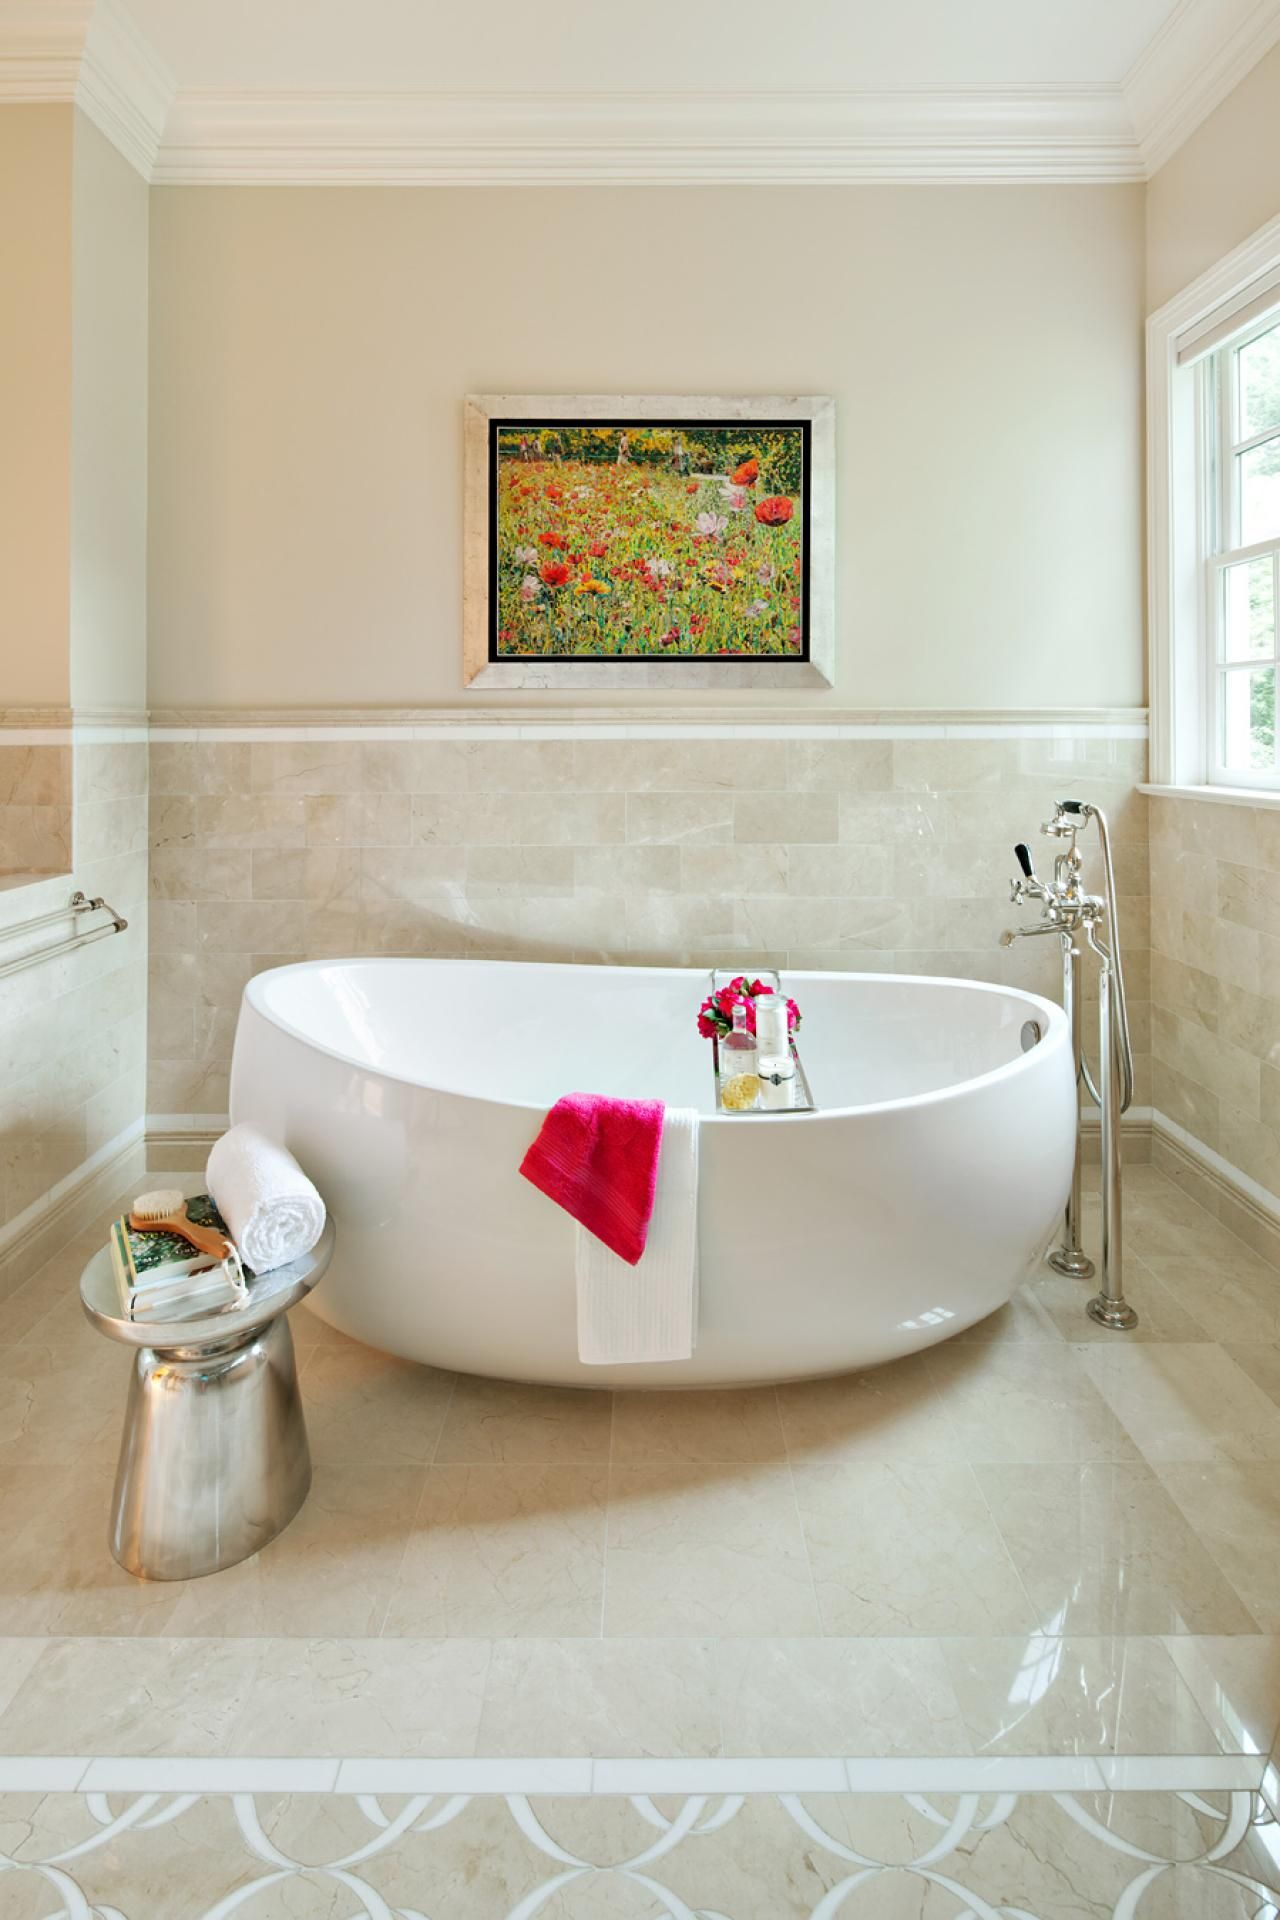 Garden tub decor  A large oval soaking tub  neutral walls partially tiled walls and